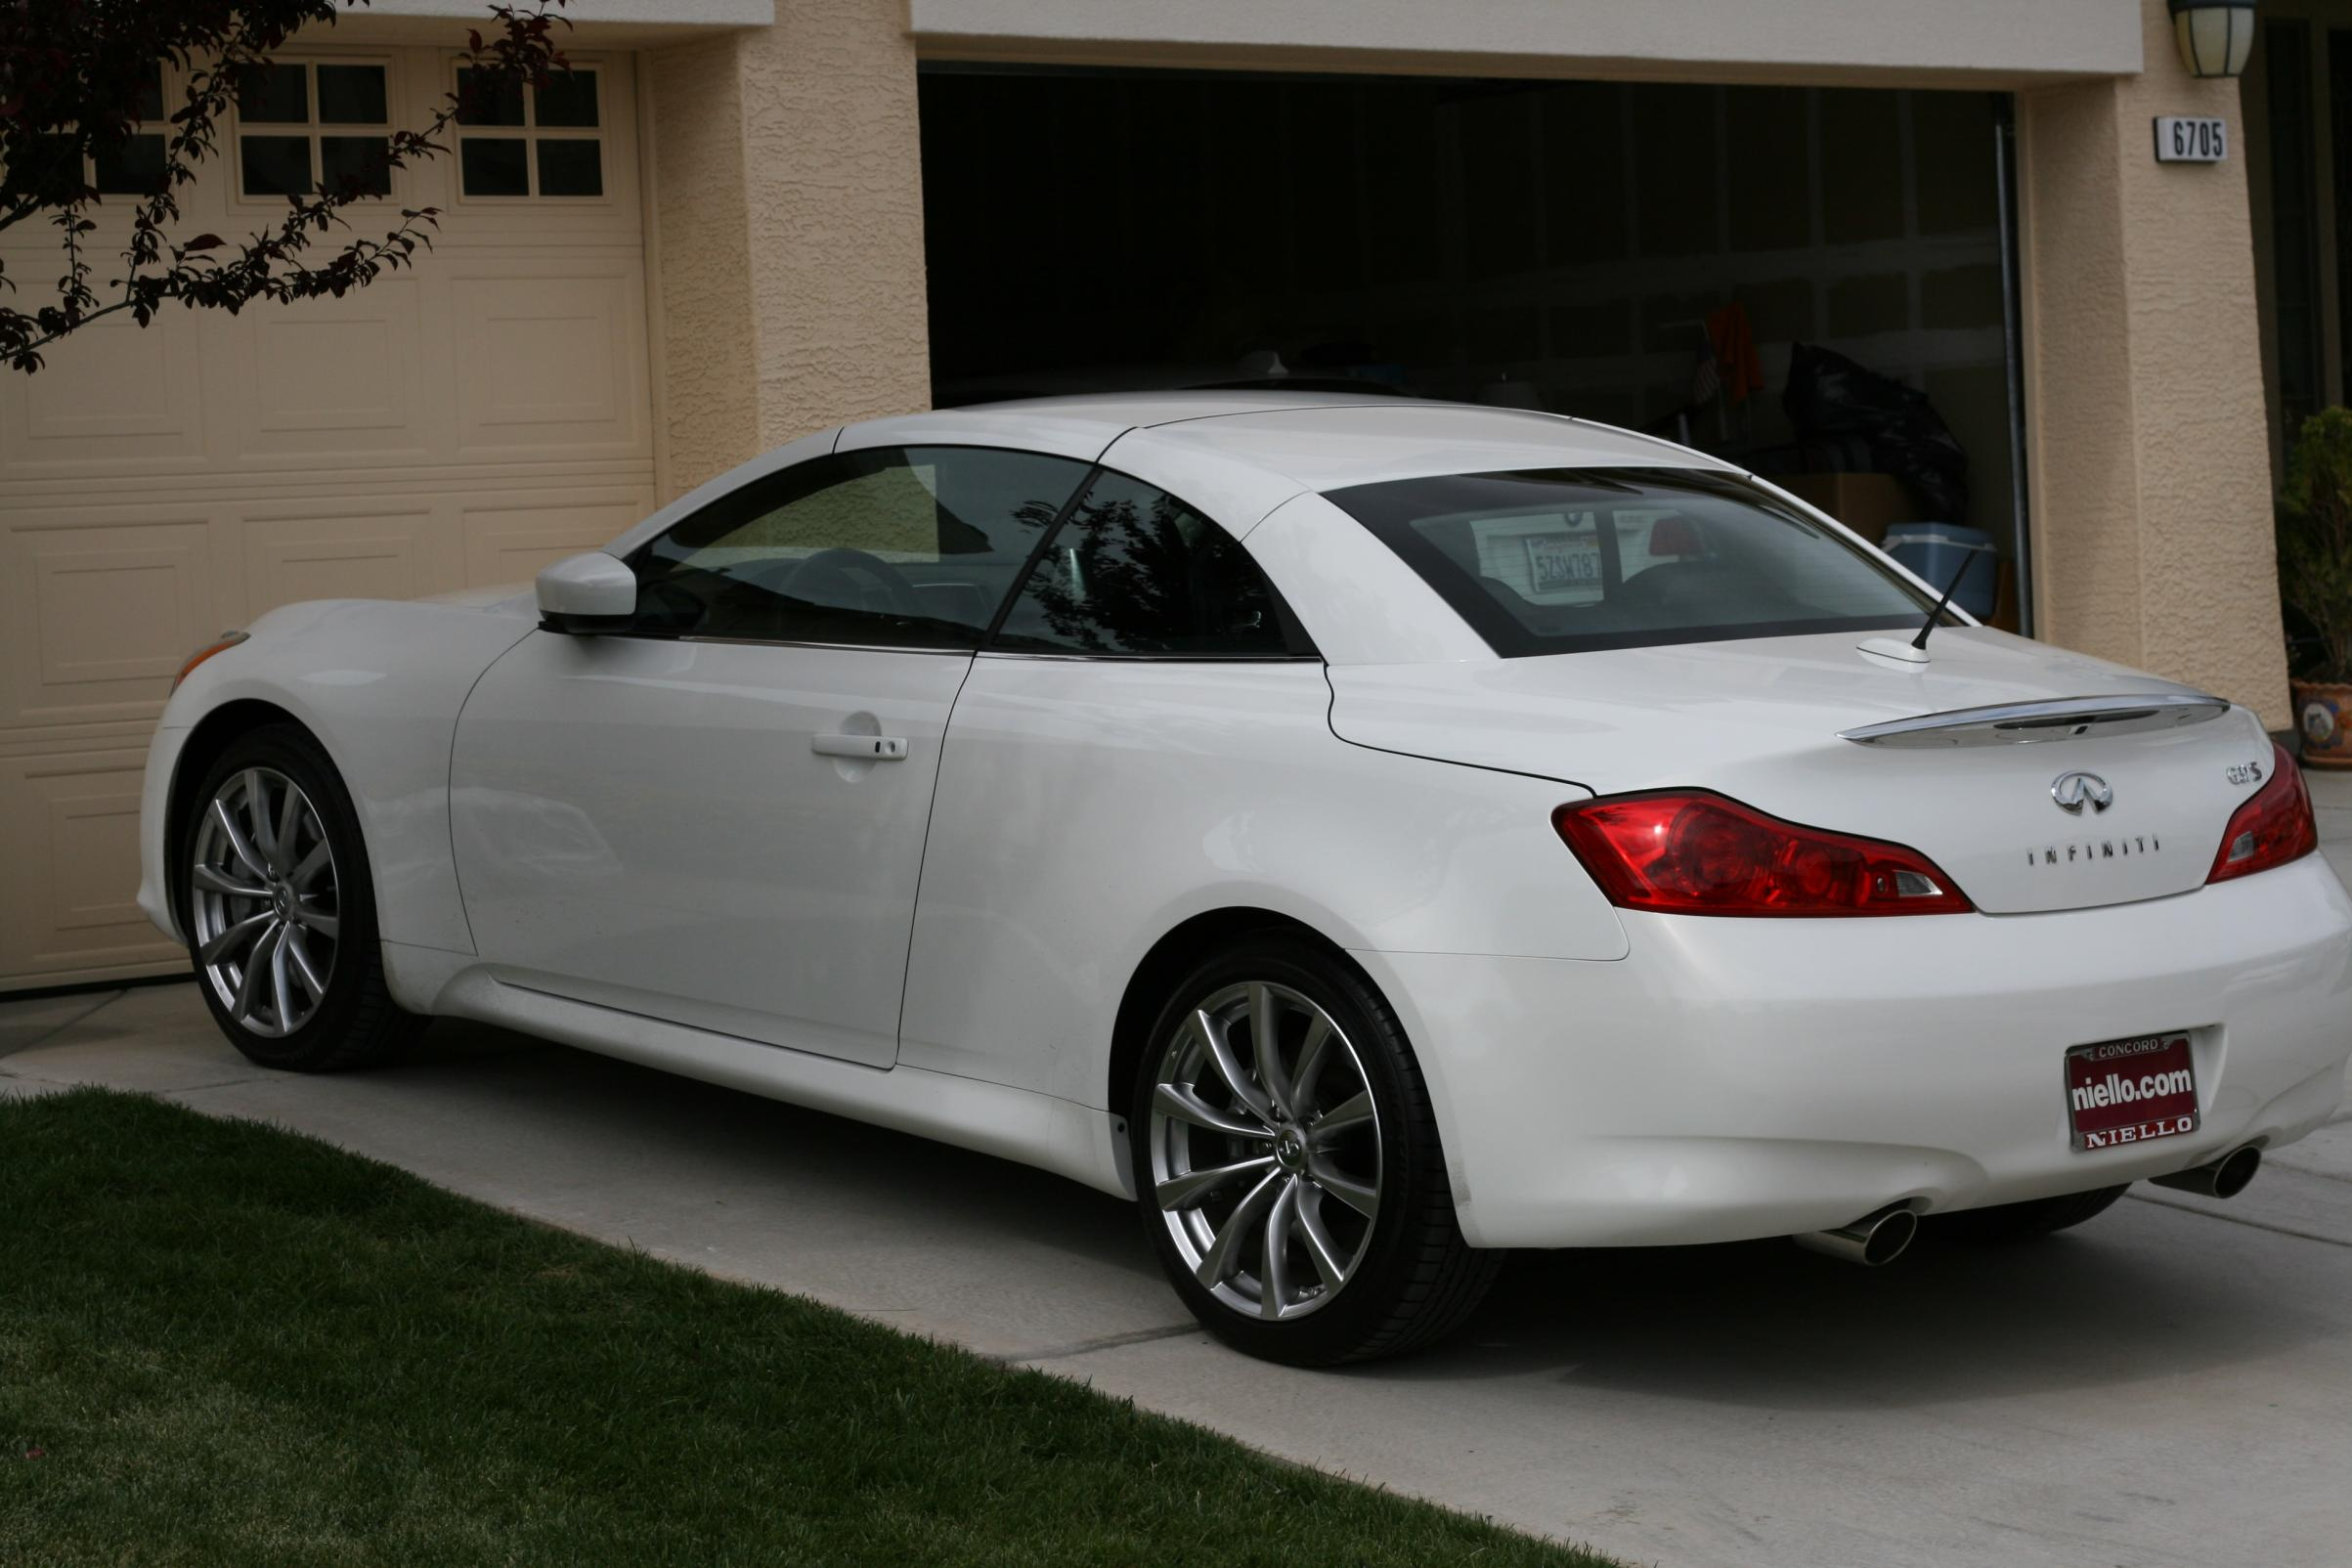 infiniti g37 cabrio photos 14 on better parts ltd. Black Bedroom Furniture Sets. Home Design Ideas